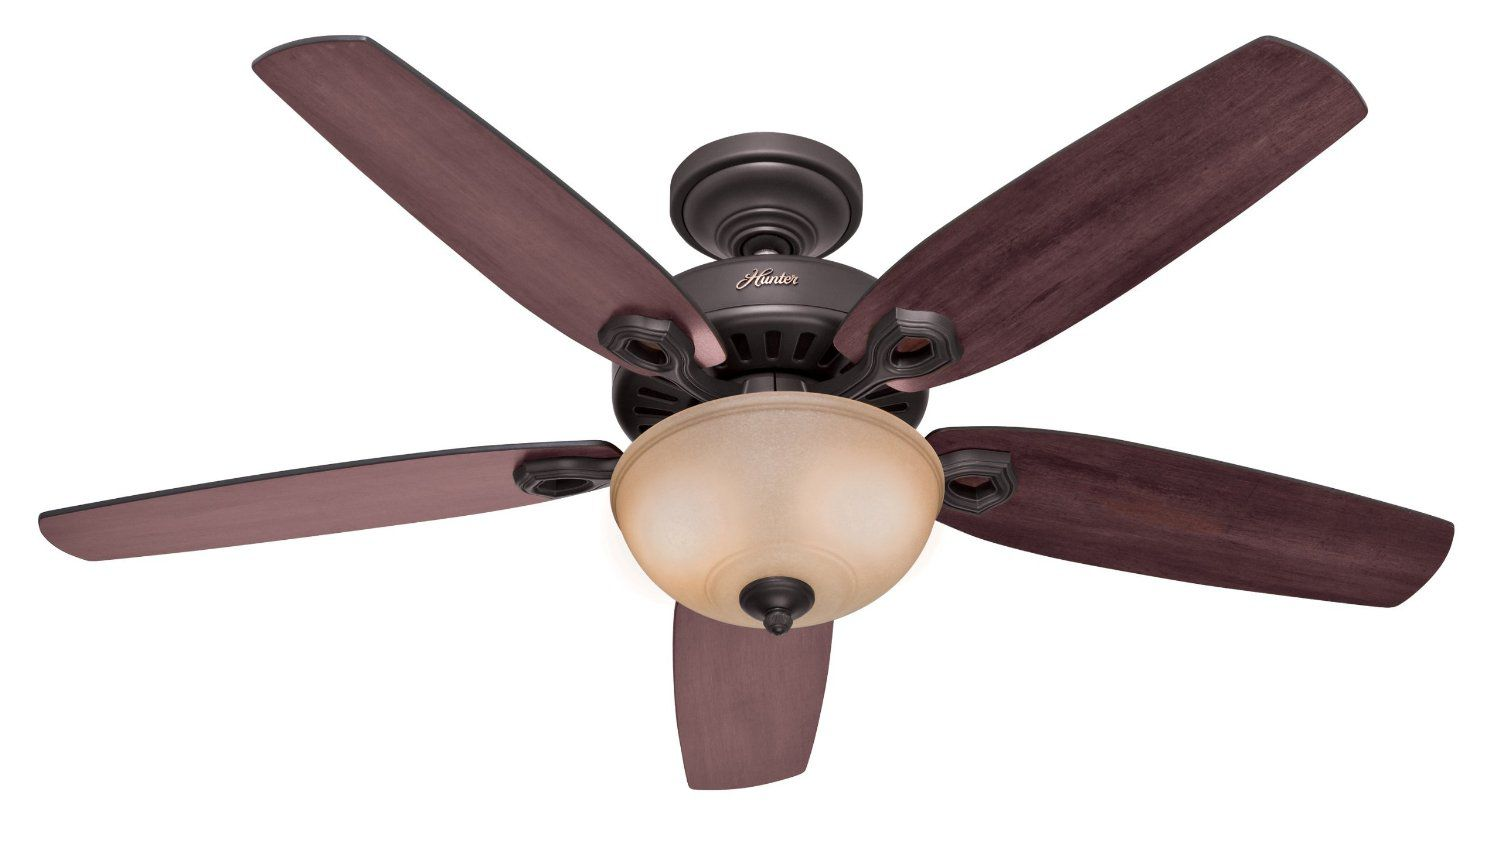 Hunter 53091 Builder Deluxe 5-Blade Single Light Ceiling Fan